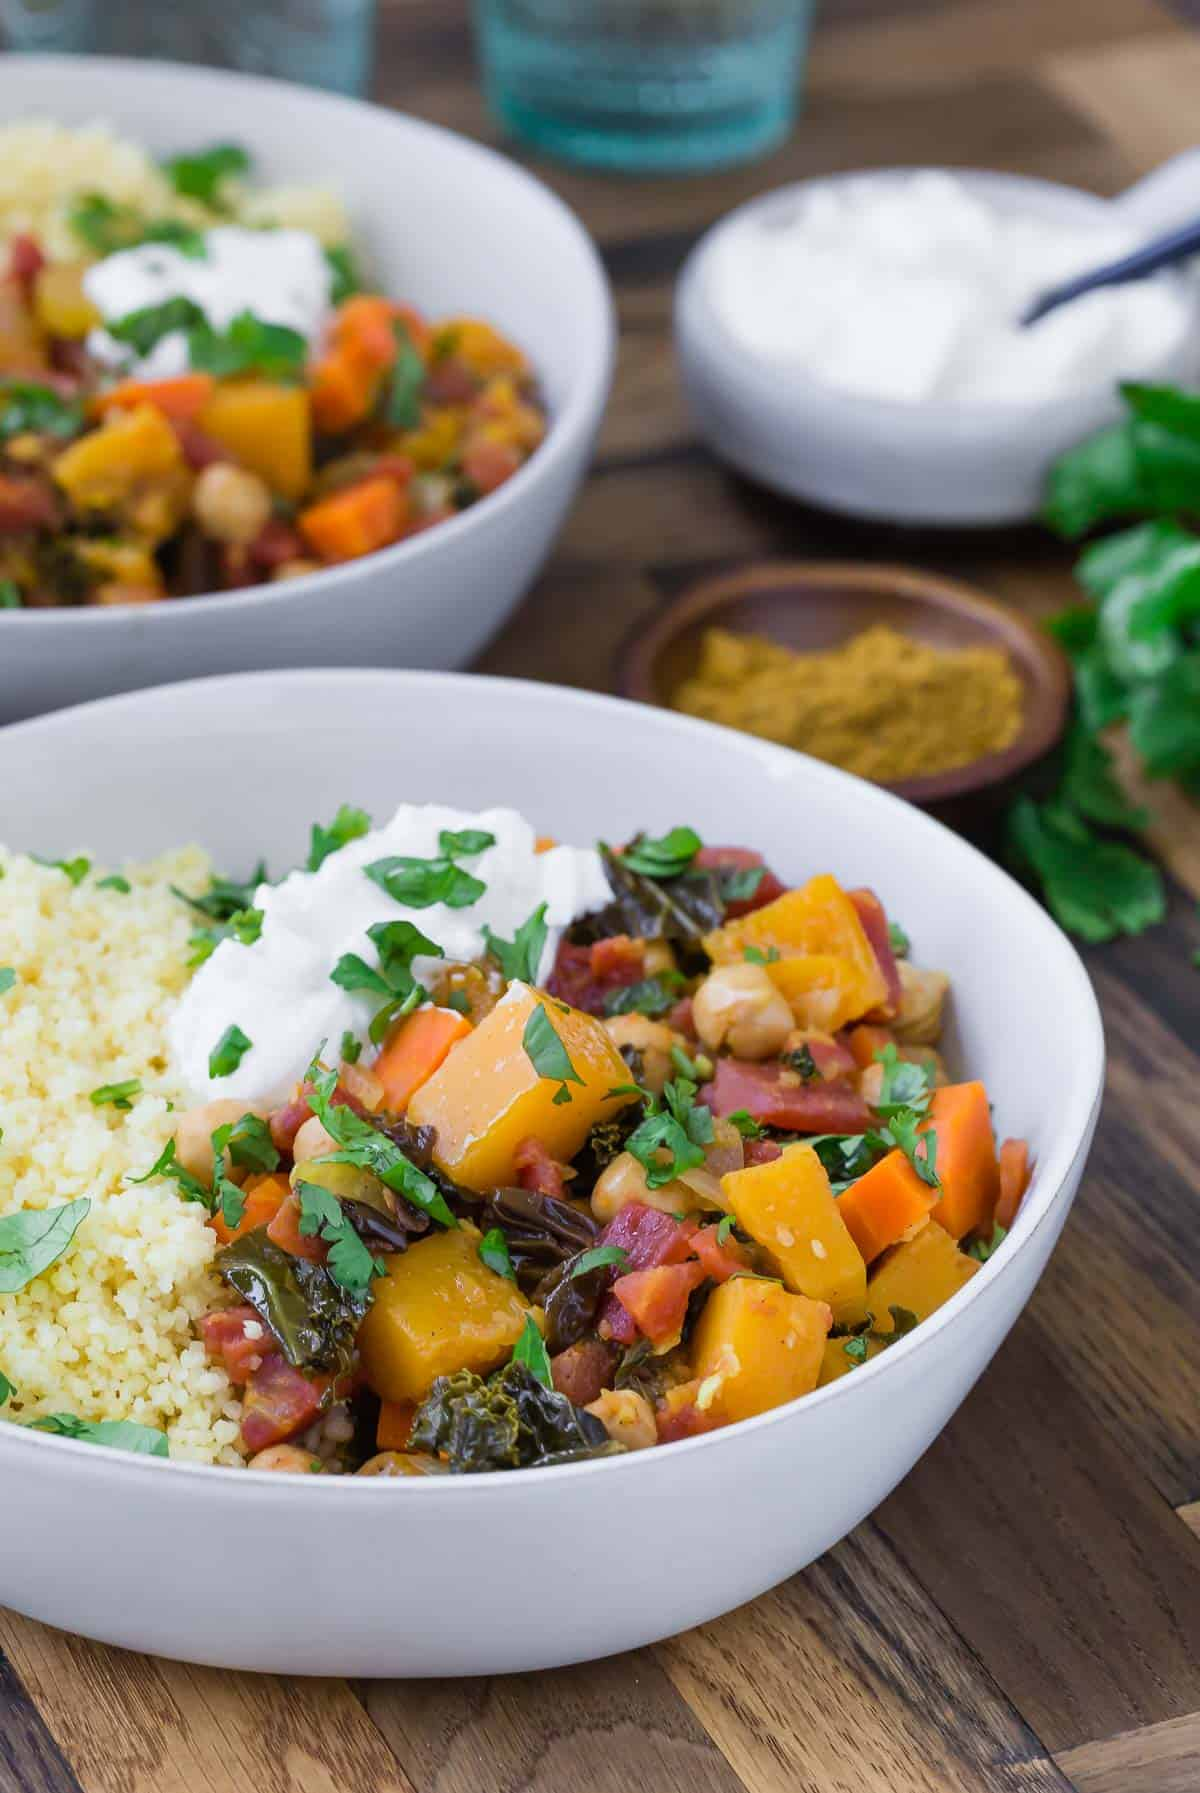 Two large white bowls with vegetarian moroccan squash stew with a small bowl of yogurt and fresh cilantro also pictured.